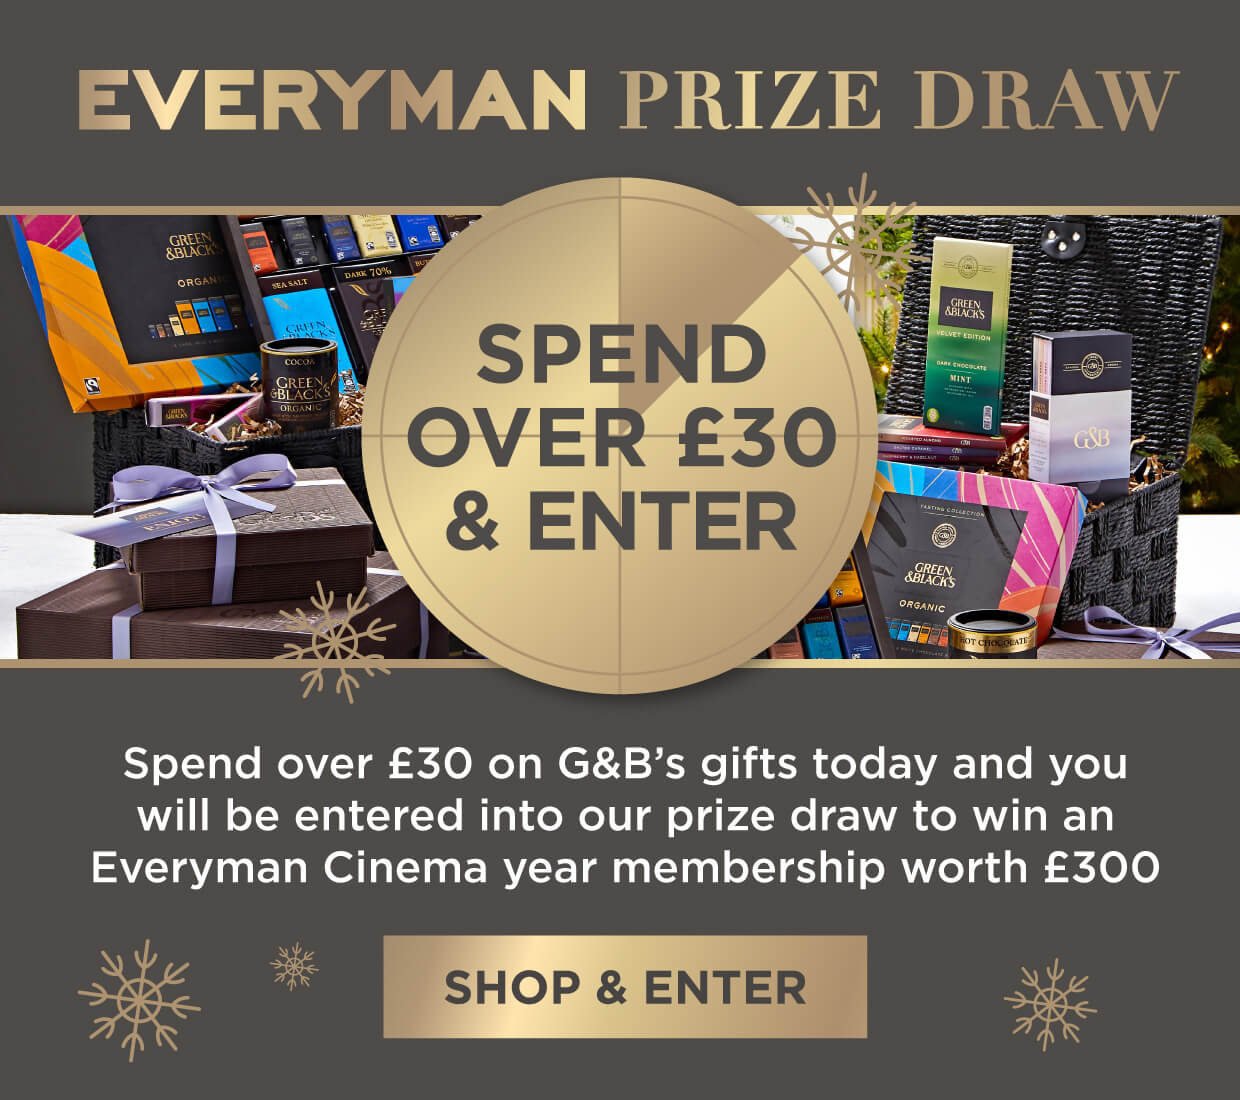 Green & Black's Everyman Offer